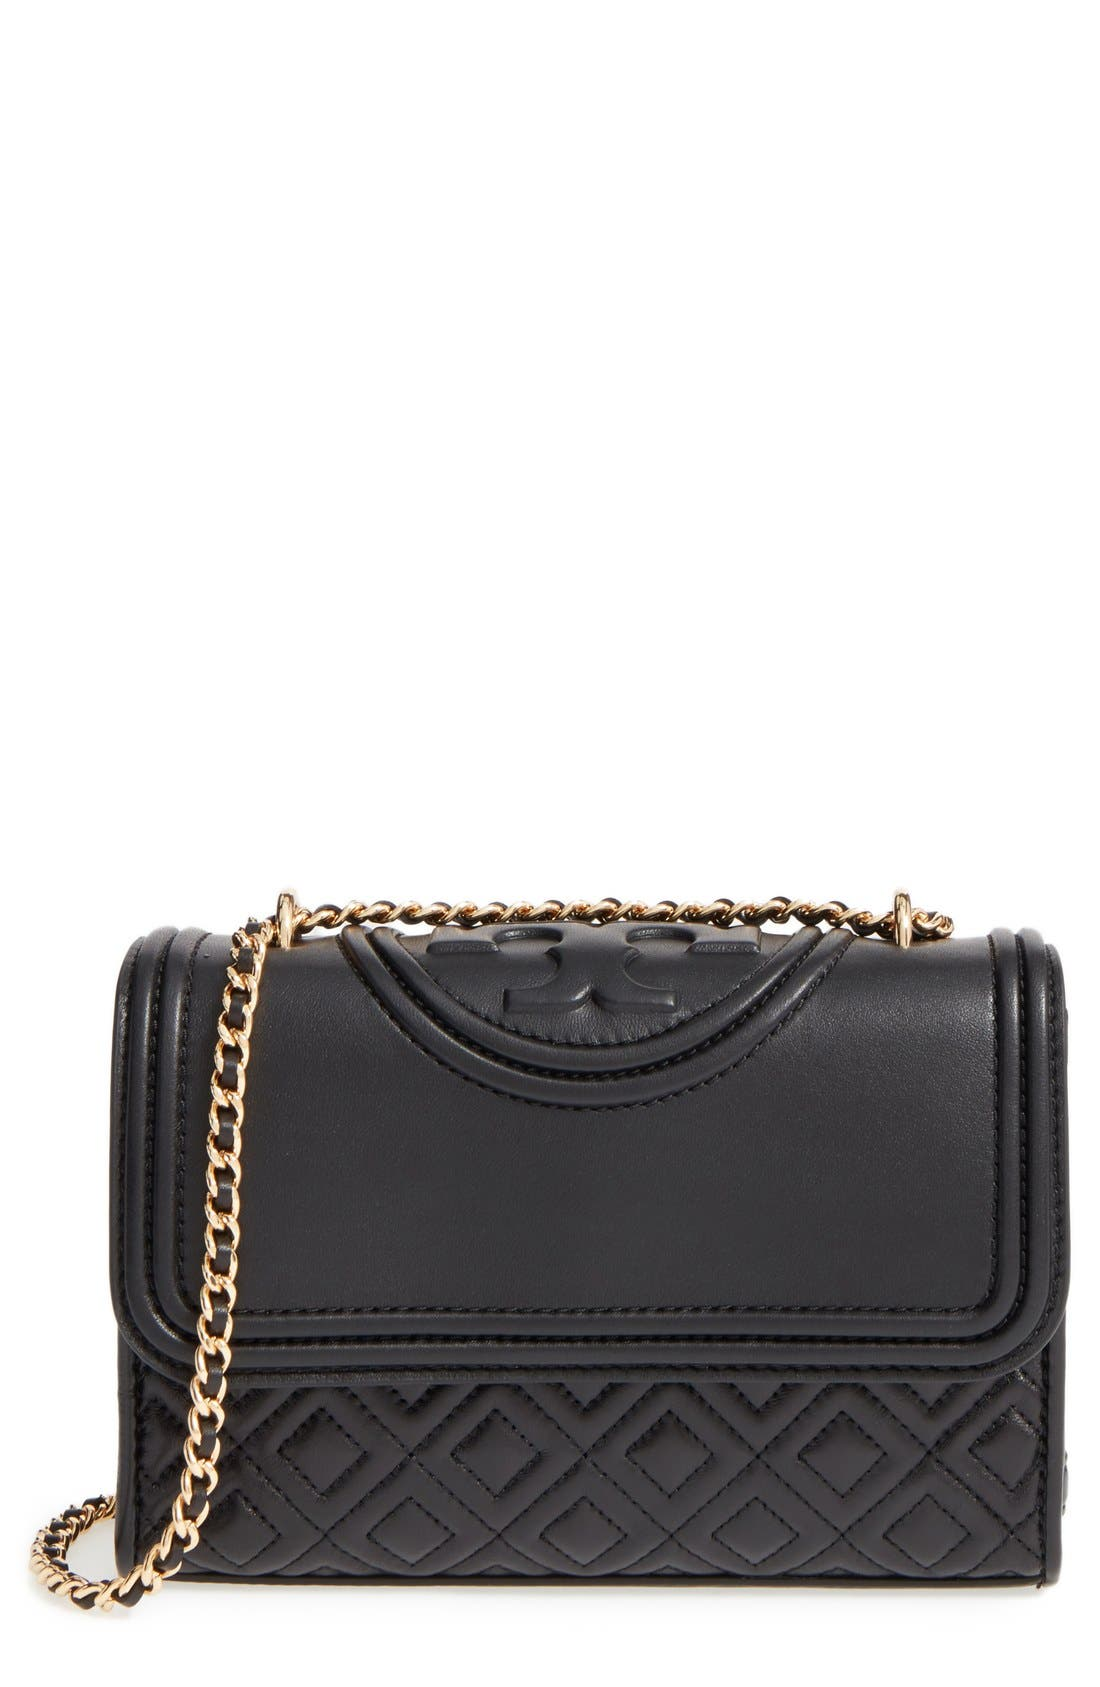 'Small Fleming' Quilted Leather Shoulder Bag,                         Main,                         color,